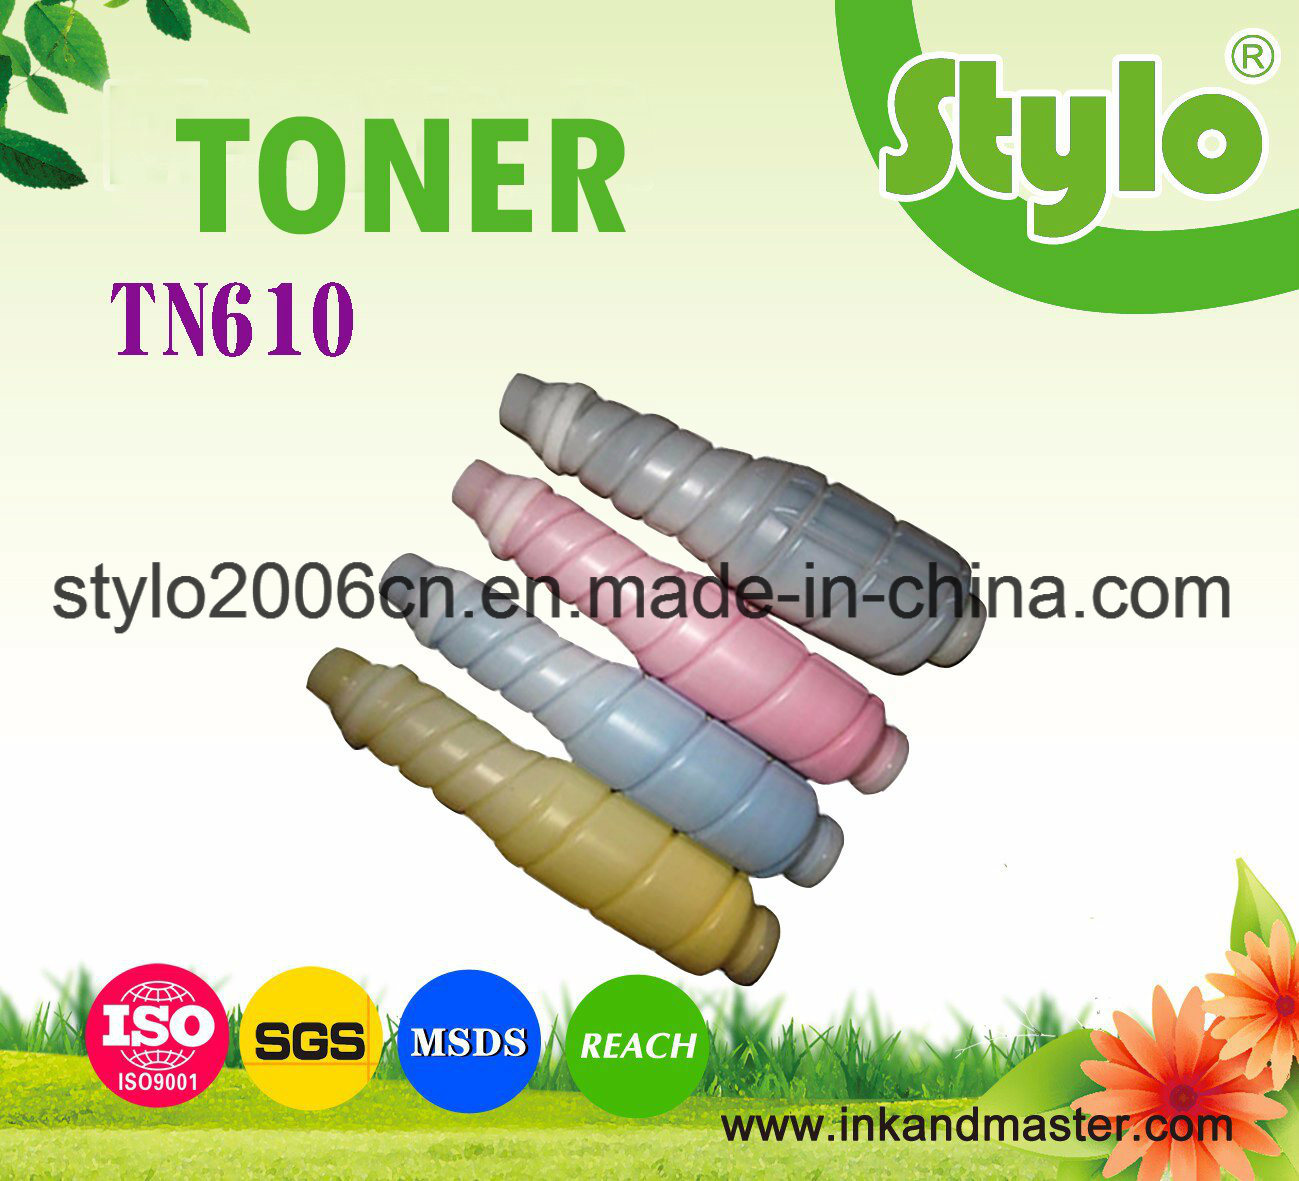 Tn610 Color Copier Toner Cartridge for Konica Minolta Bizhub C6500